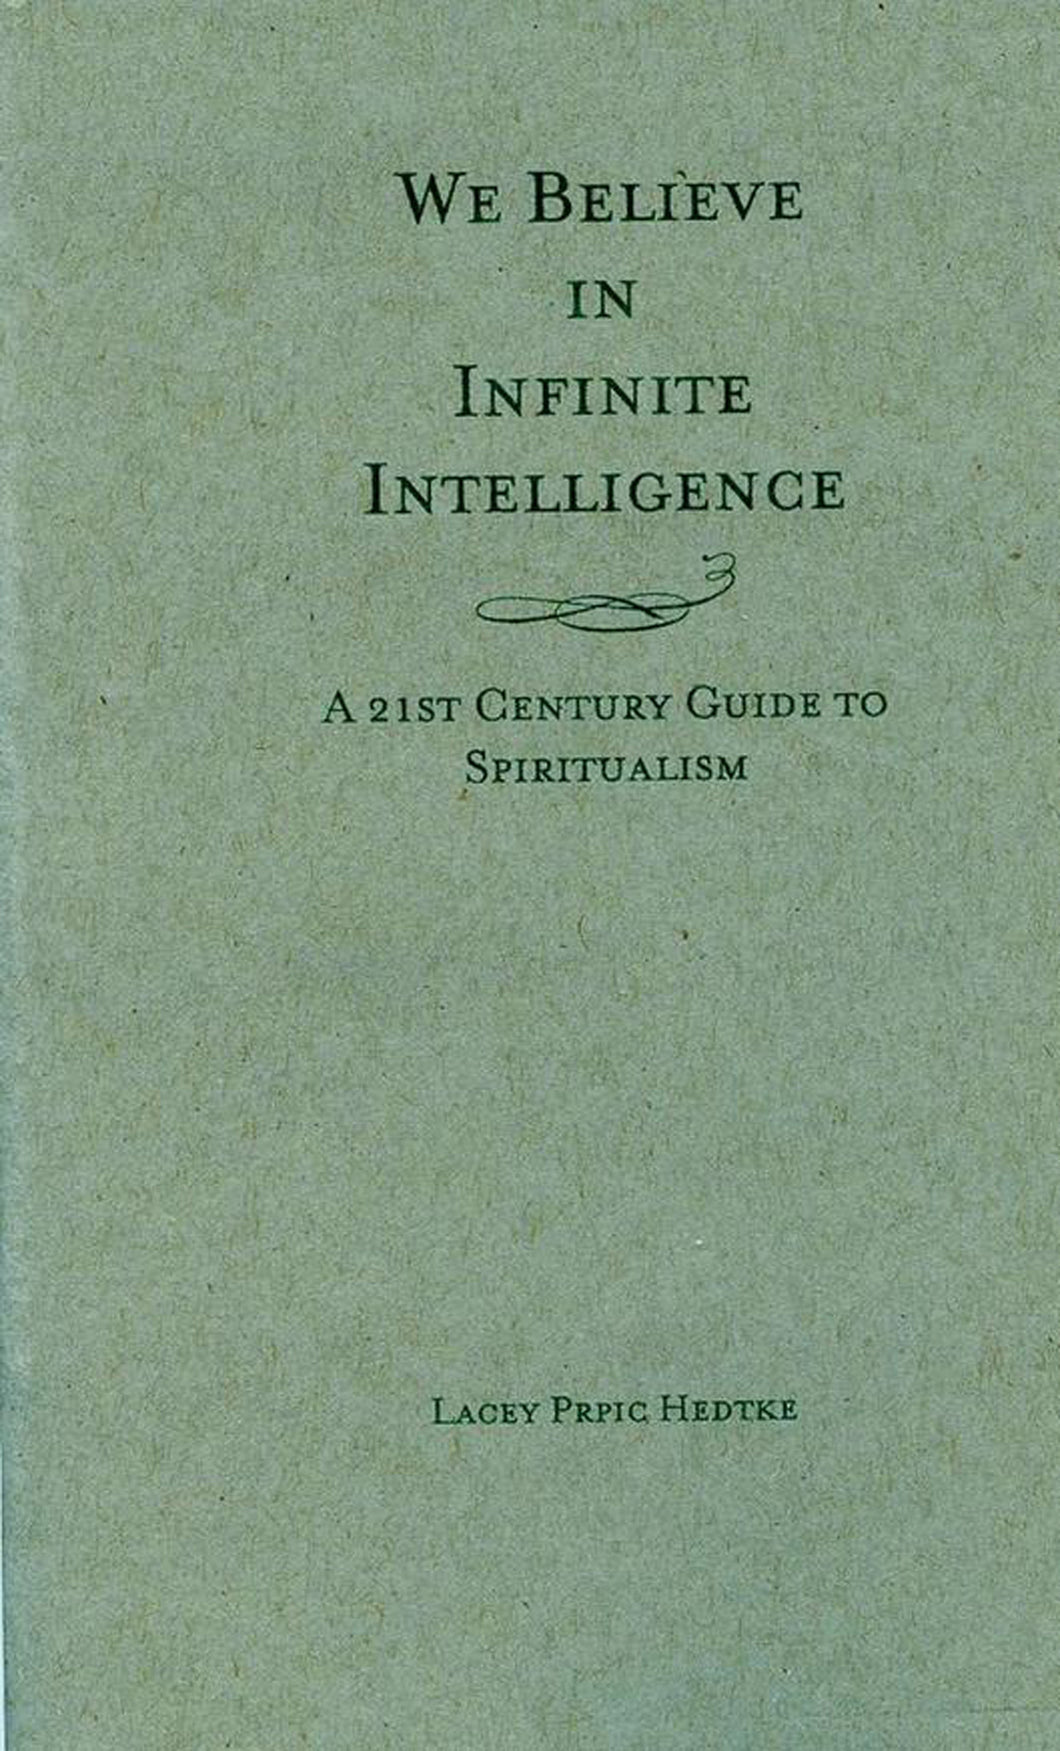 We Believe in Infinite Intelligence: A 21st Century Guide to Spiritualism